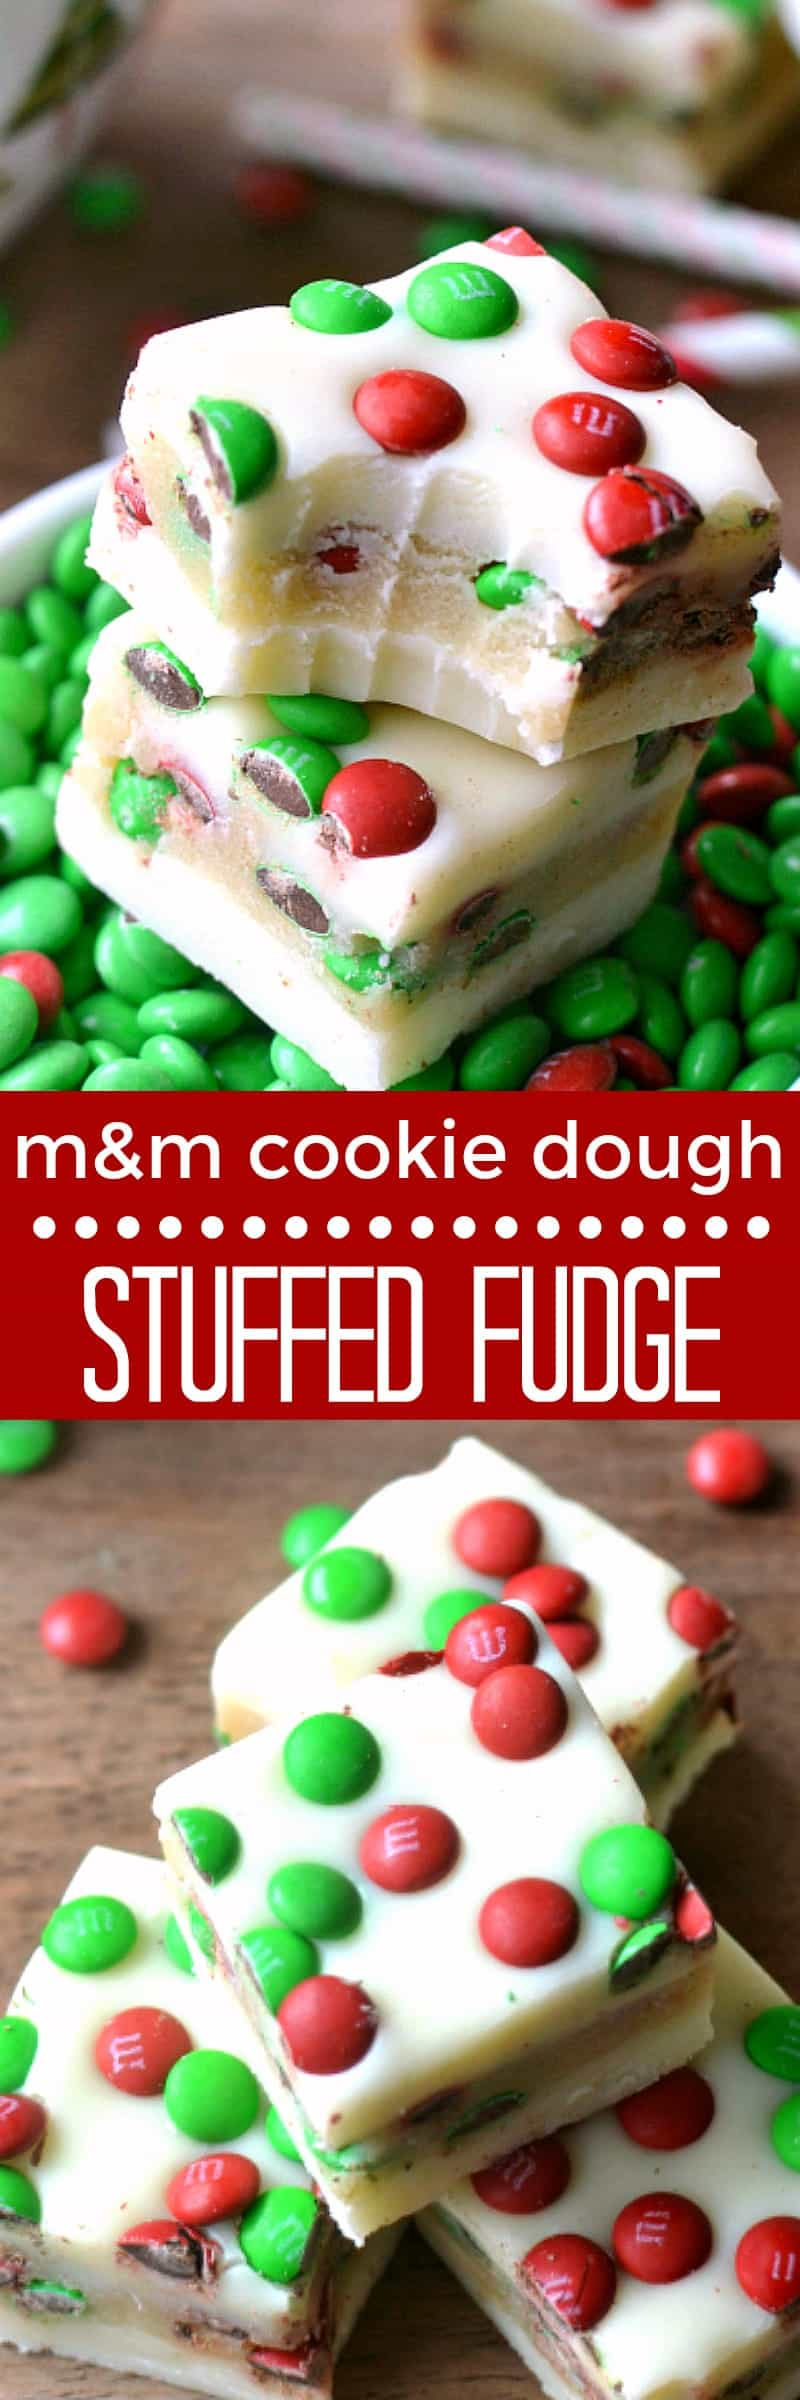 M&M Cookie Dough Stuffed Fudge - The BEST Holiday Fudge Recipes!